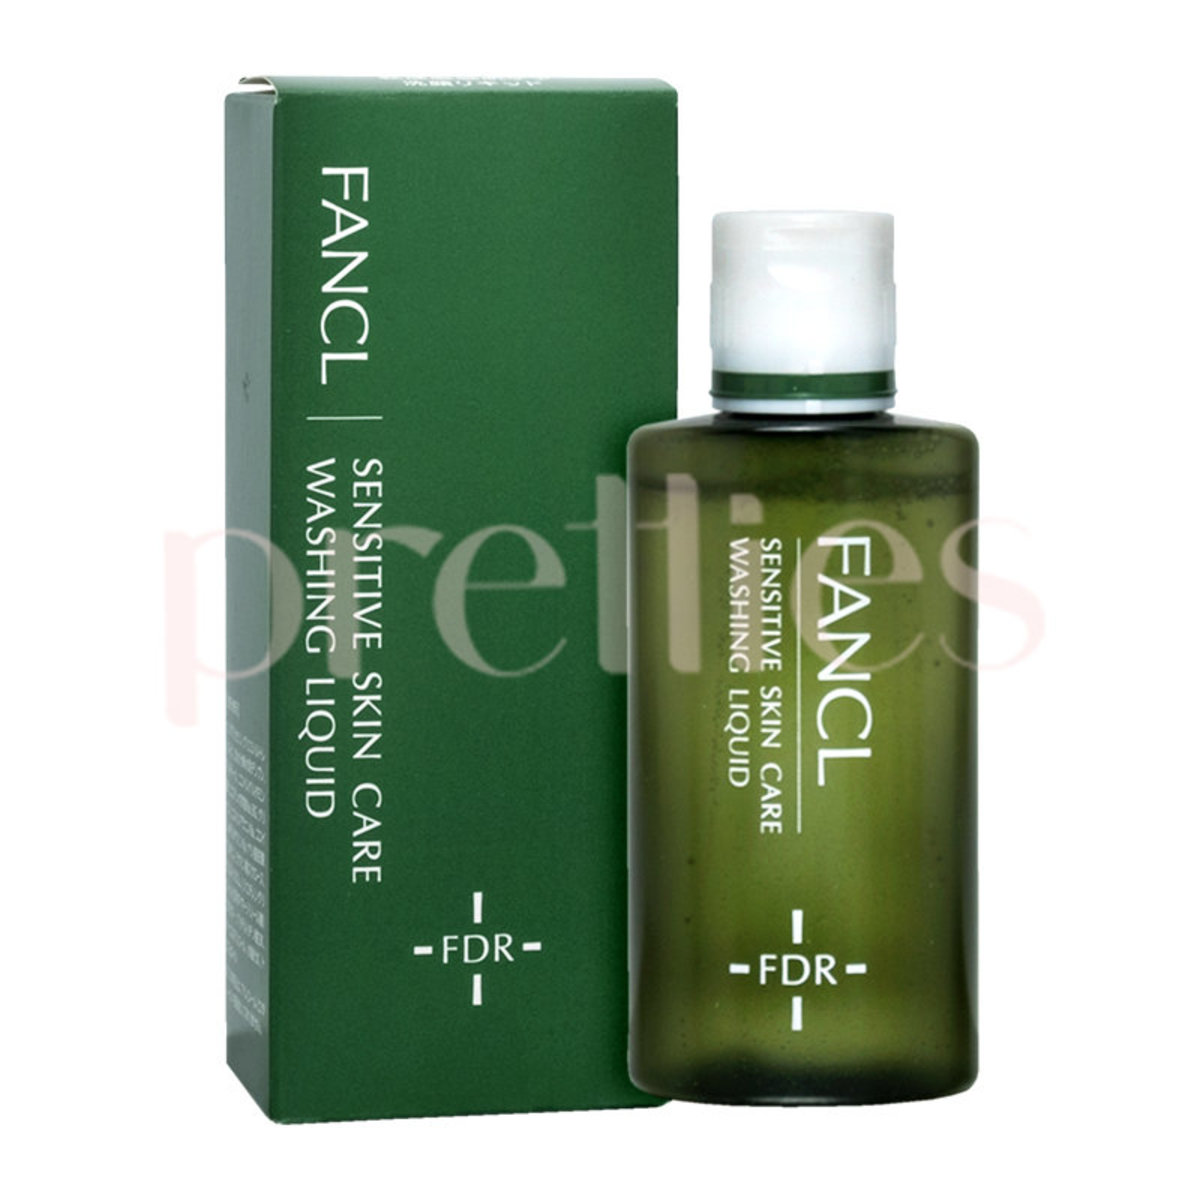 FDR Sensitive Skin Care Washing Liquid 60ml (Parallel Import)